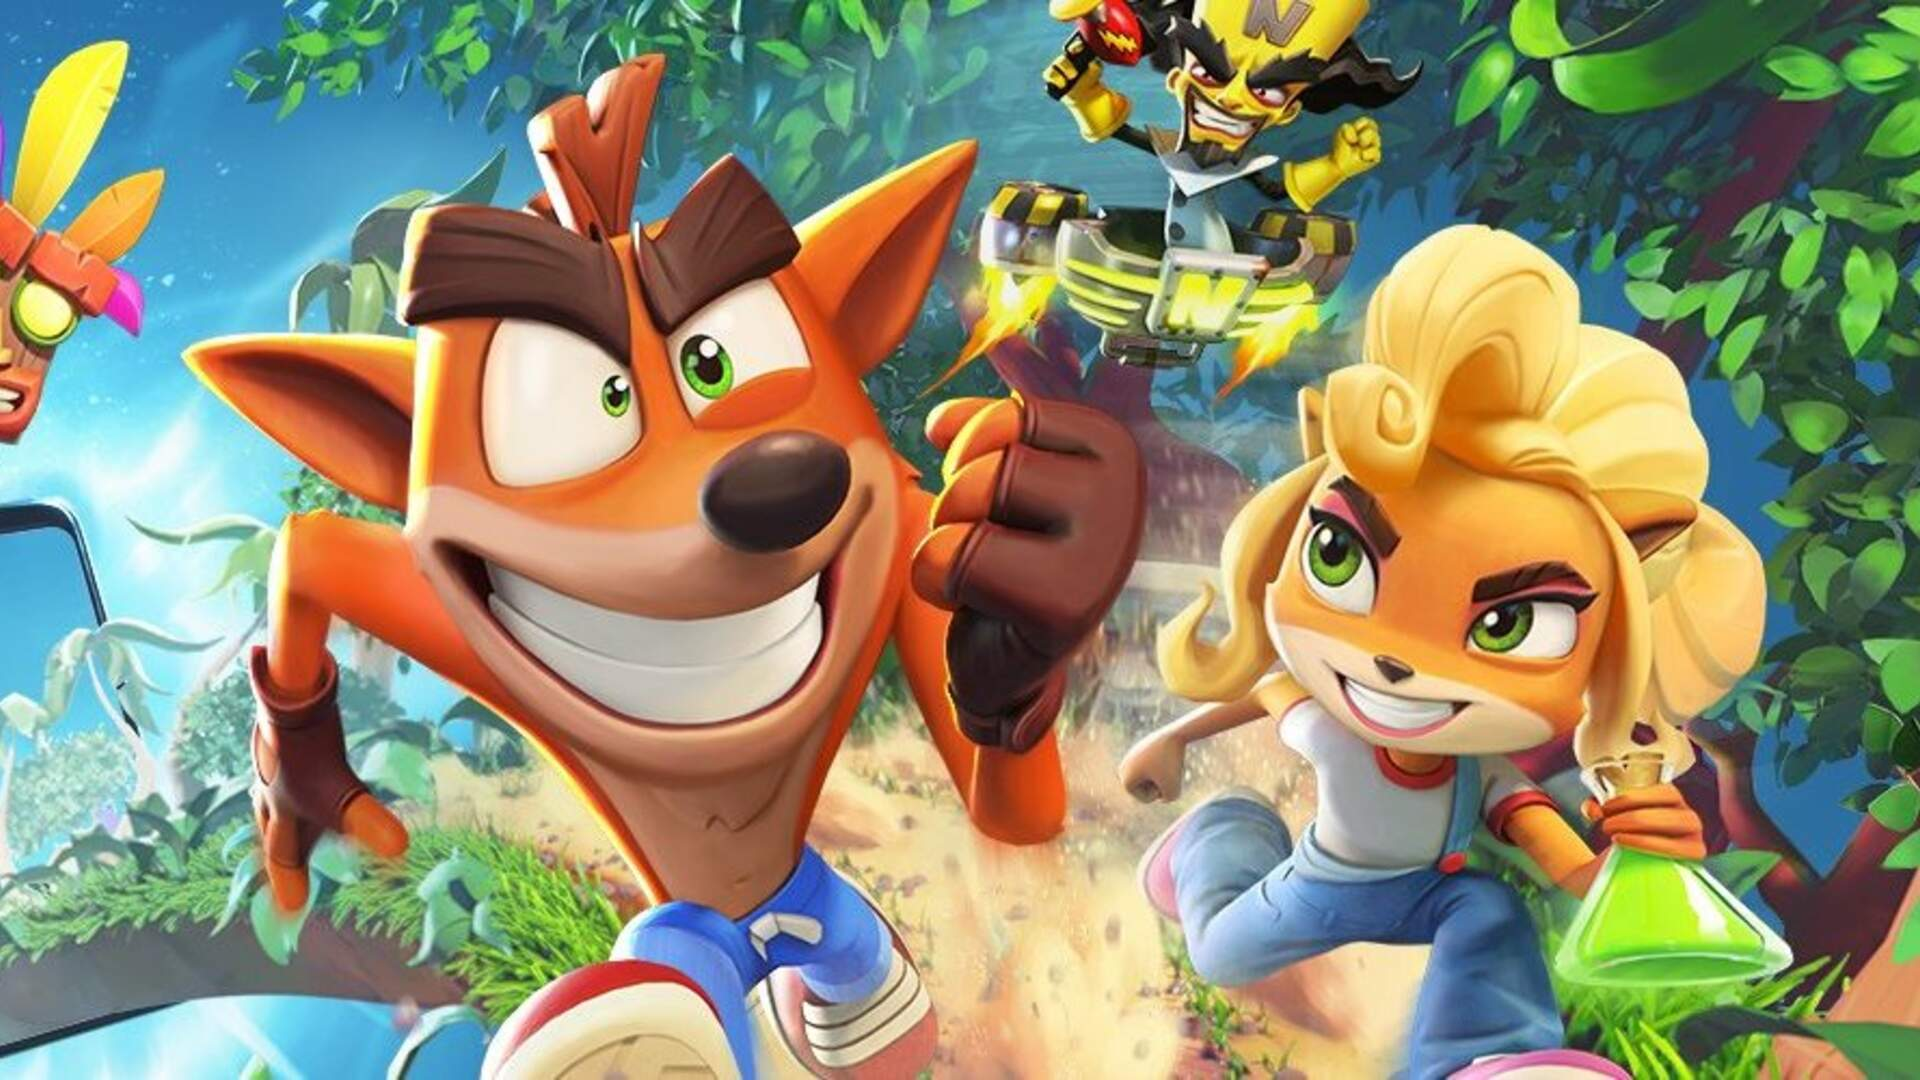 After Many Leaks, Crash Bandicoot: On the Run is Revealed for Mobile